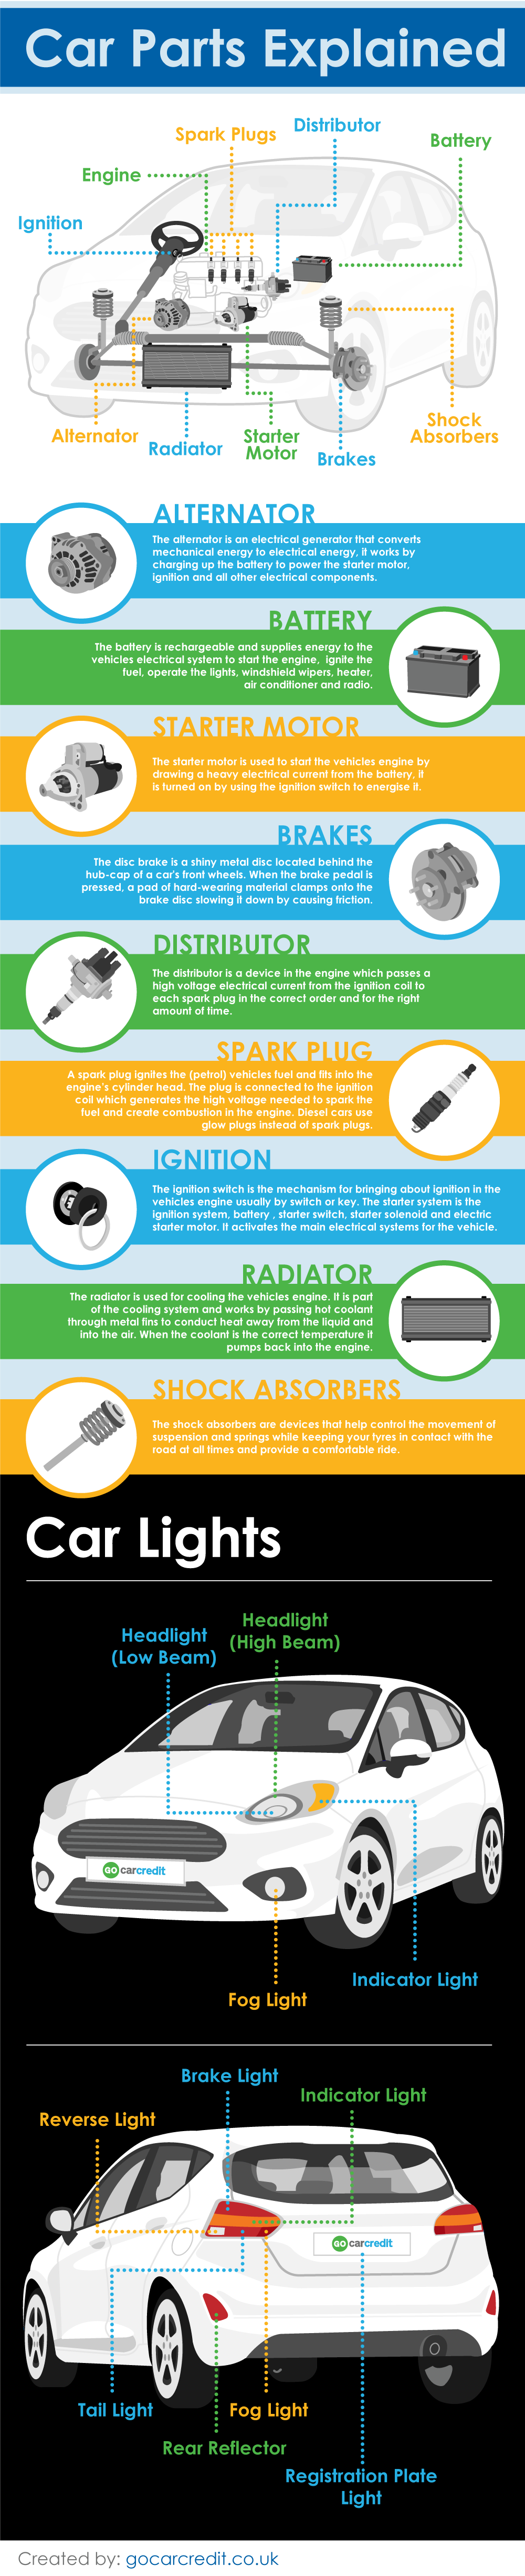 car-parts-explained-infographic-plaza